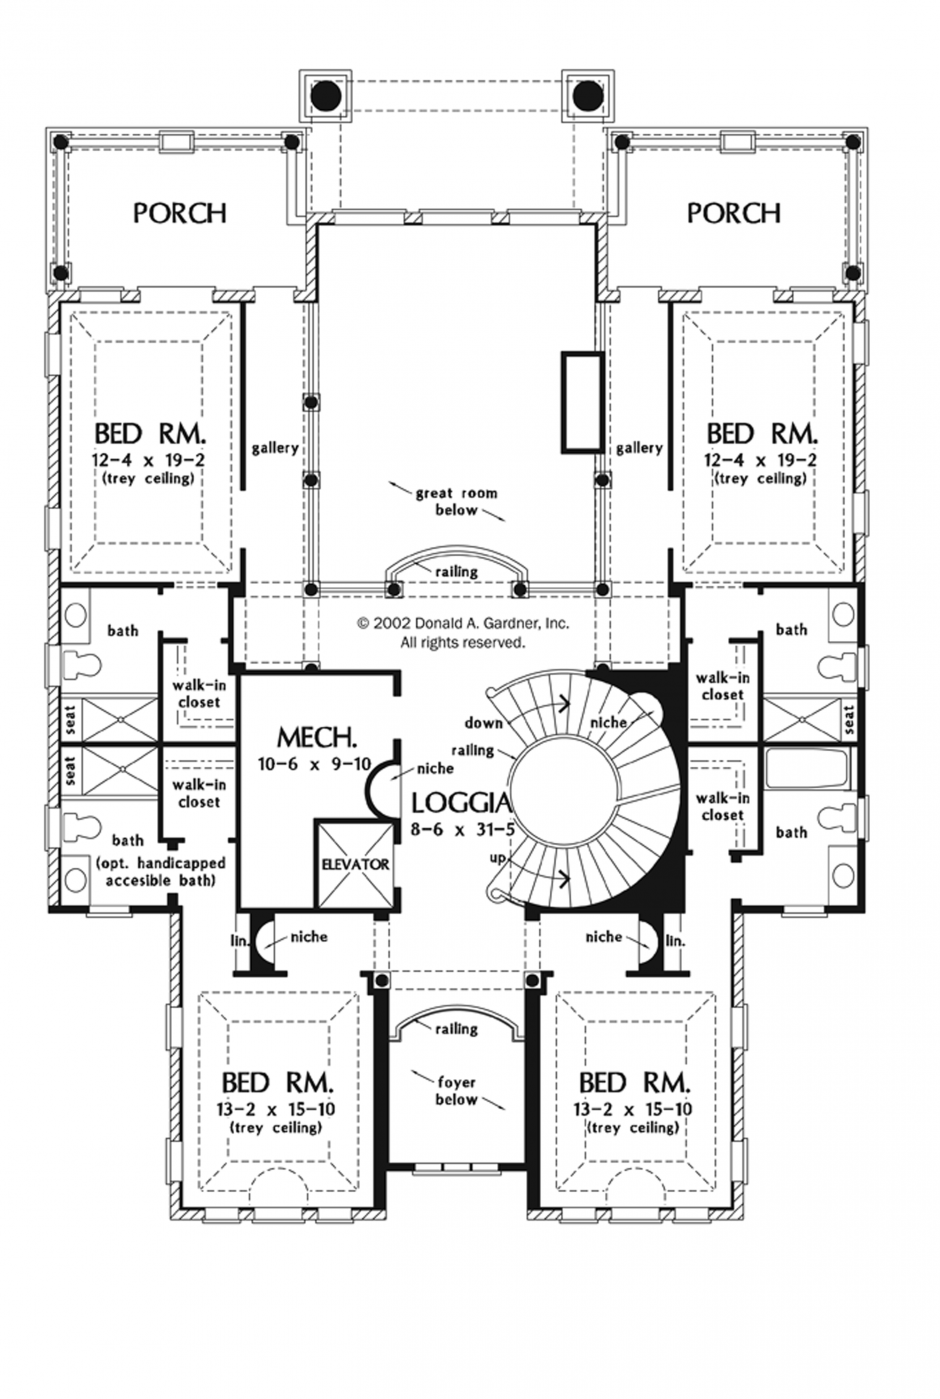 Mansion House Plan Designs Luxury Mansion Designs Luxury Mansions Designs Luxury Home Designs Ne Luxury House Plans Architectural Floor Plans House Floor Plans